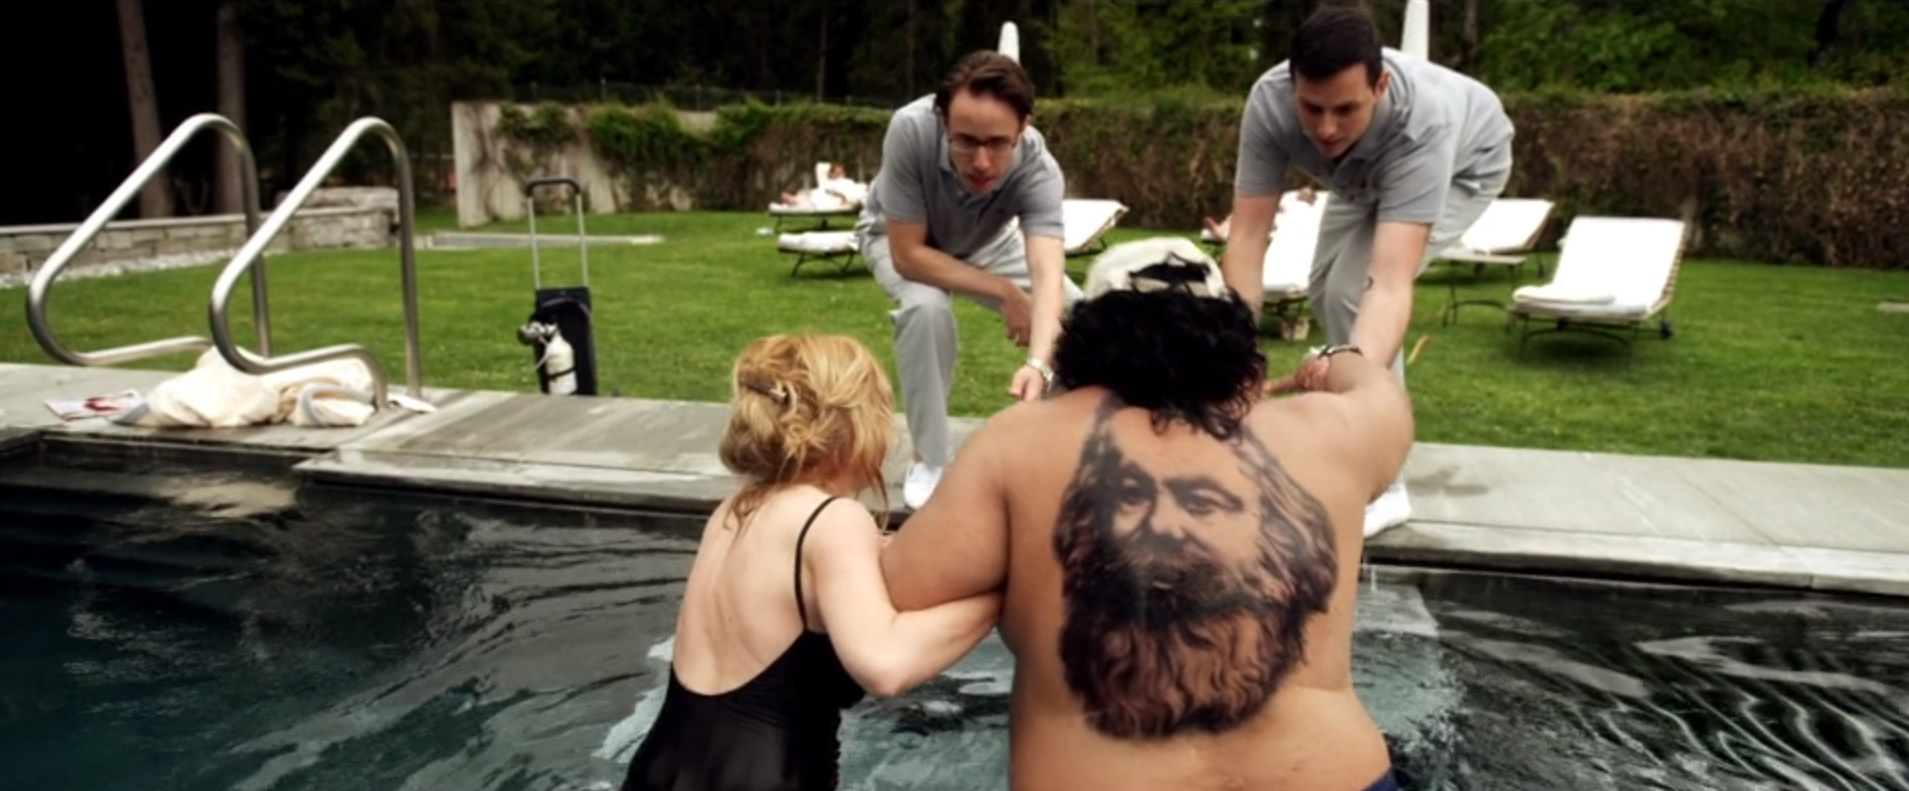 FILM: Paolo Sorrentino, Youth